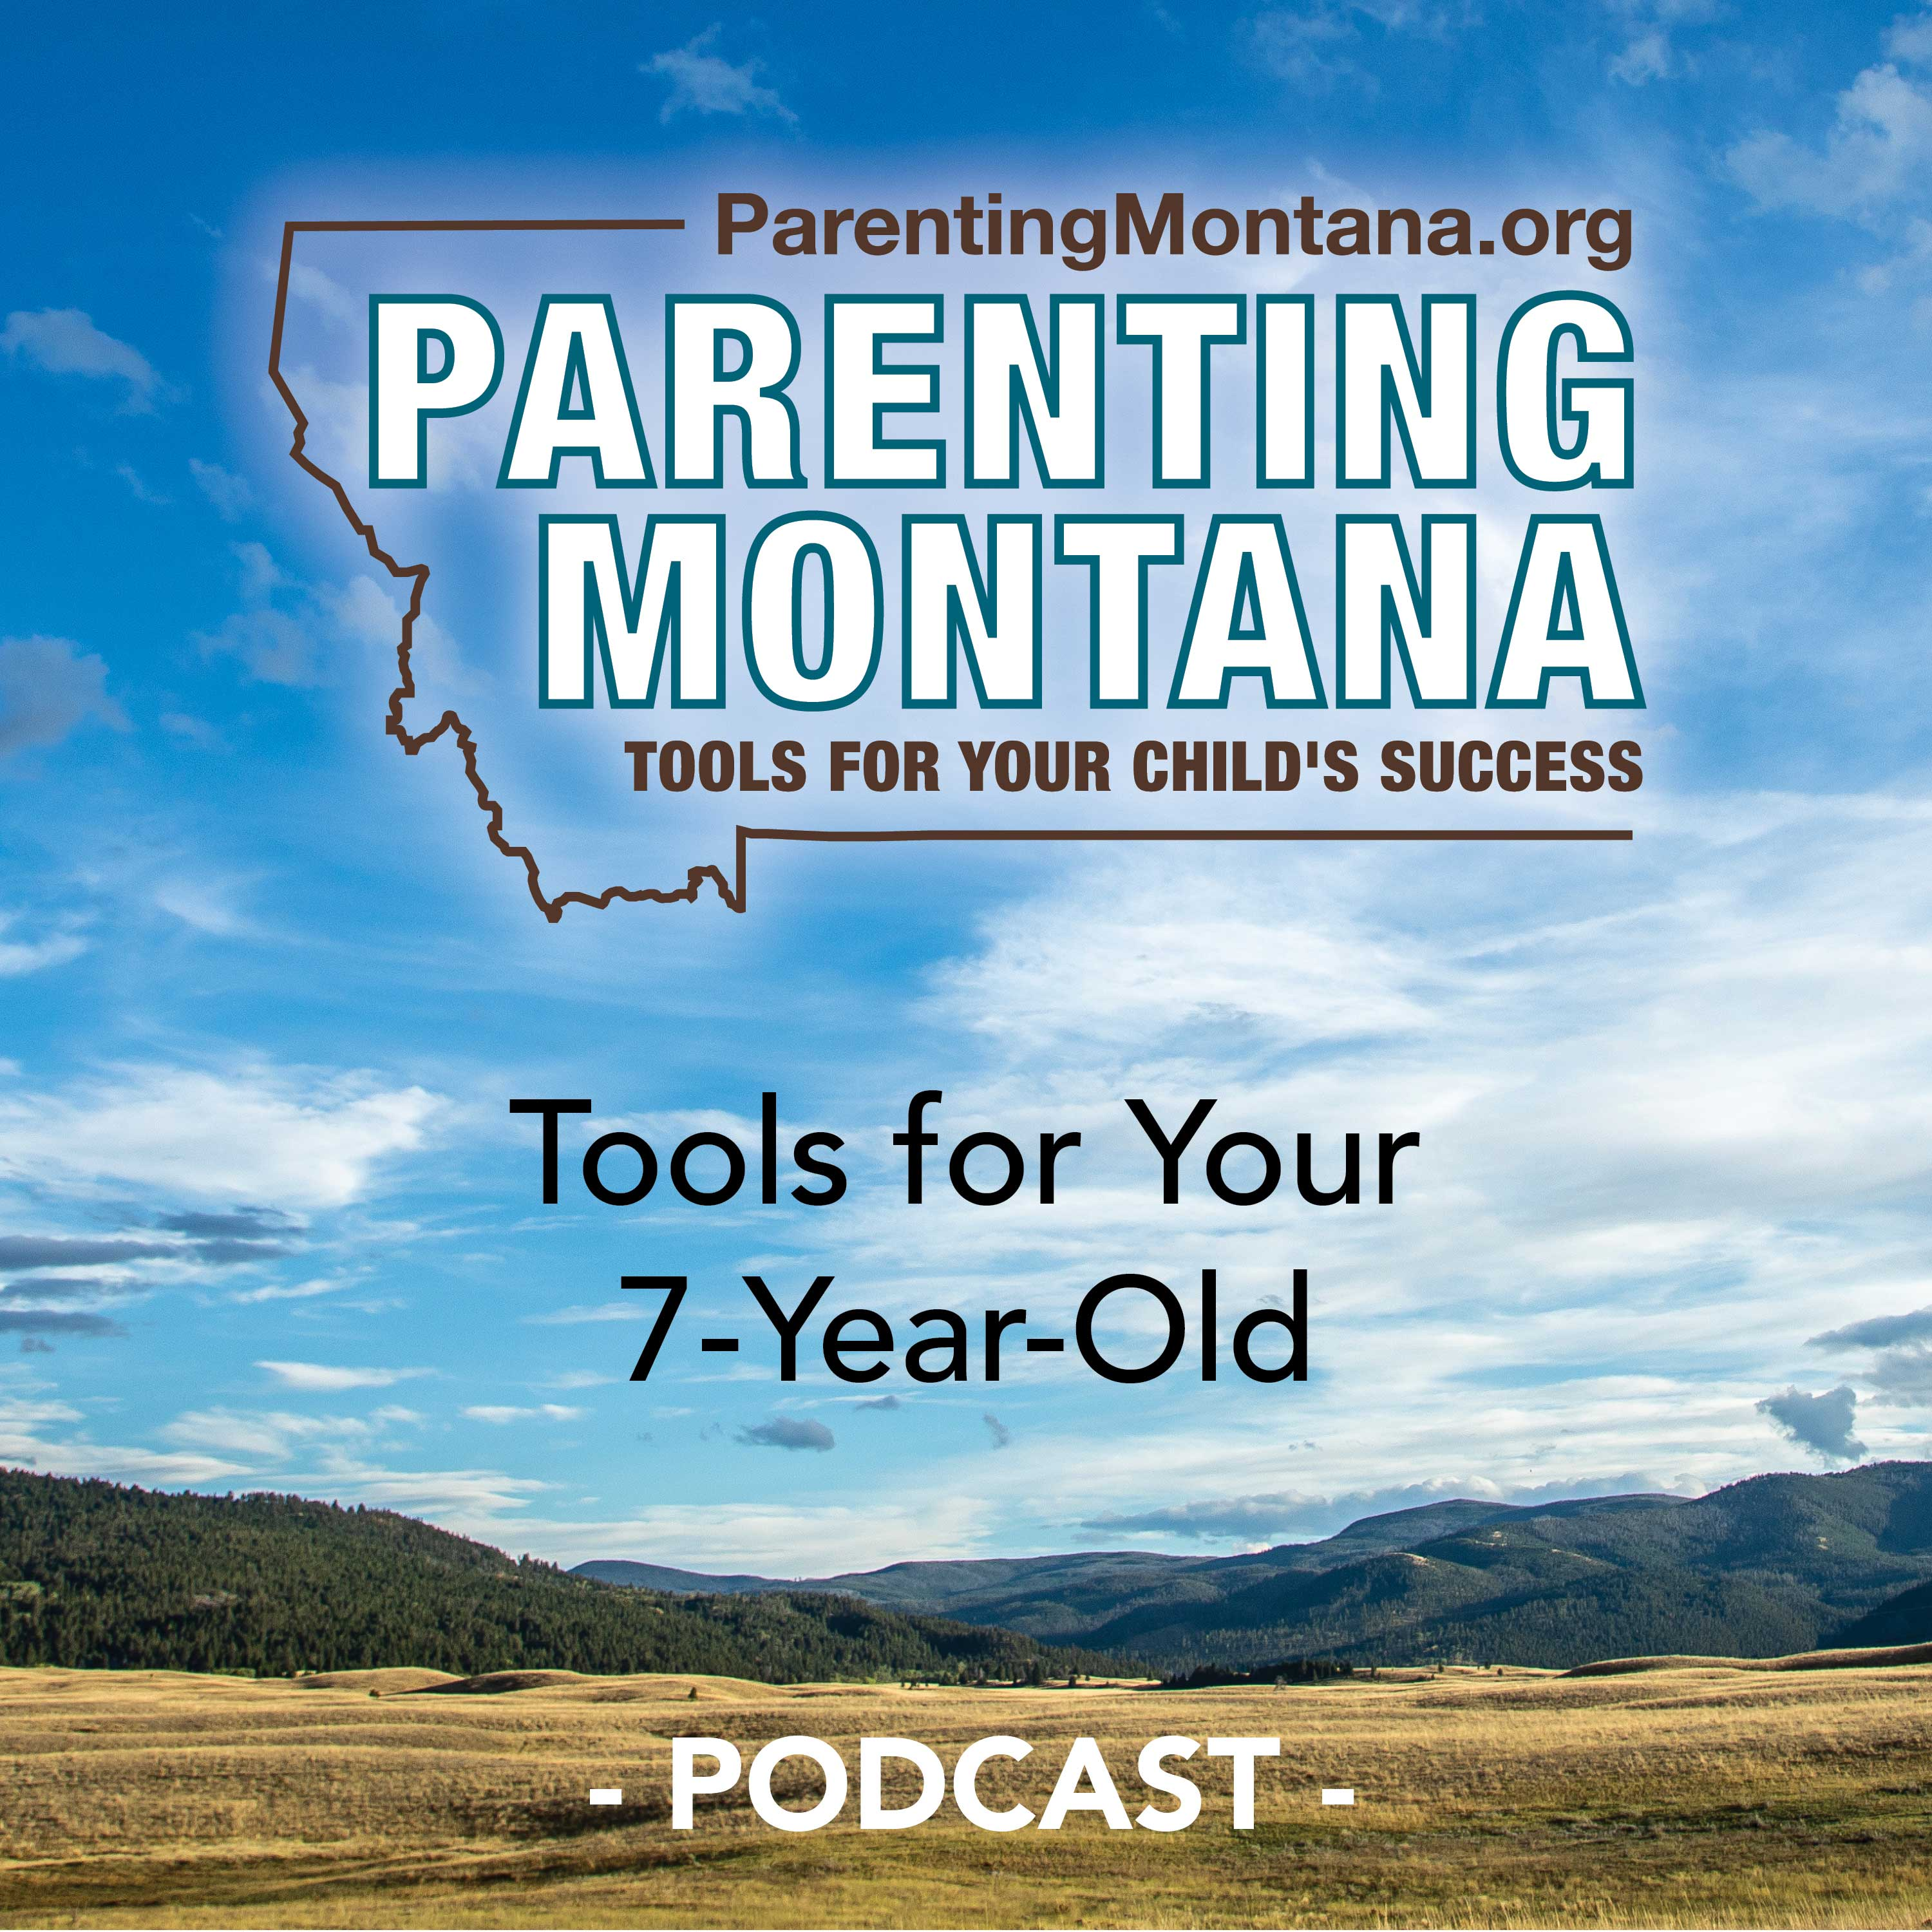 Artwork for podcast ParentingMontana.org Tools for Your 7-Year-Old